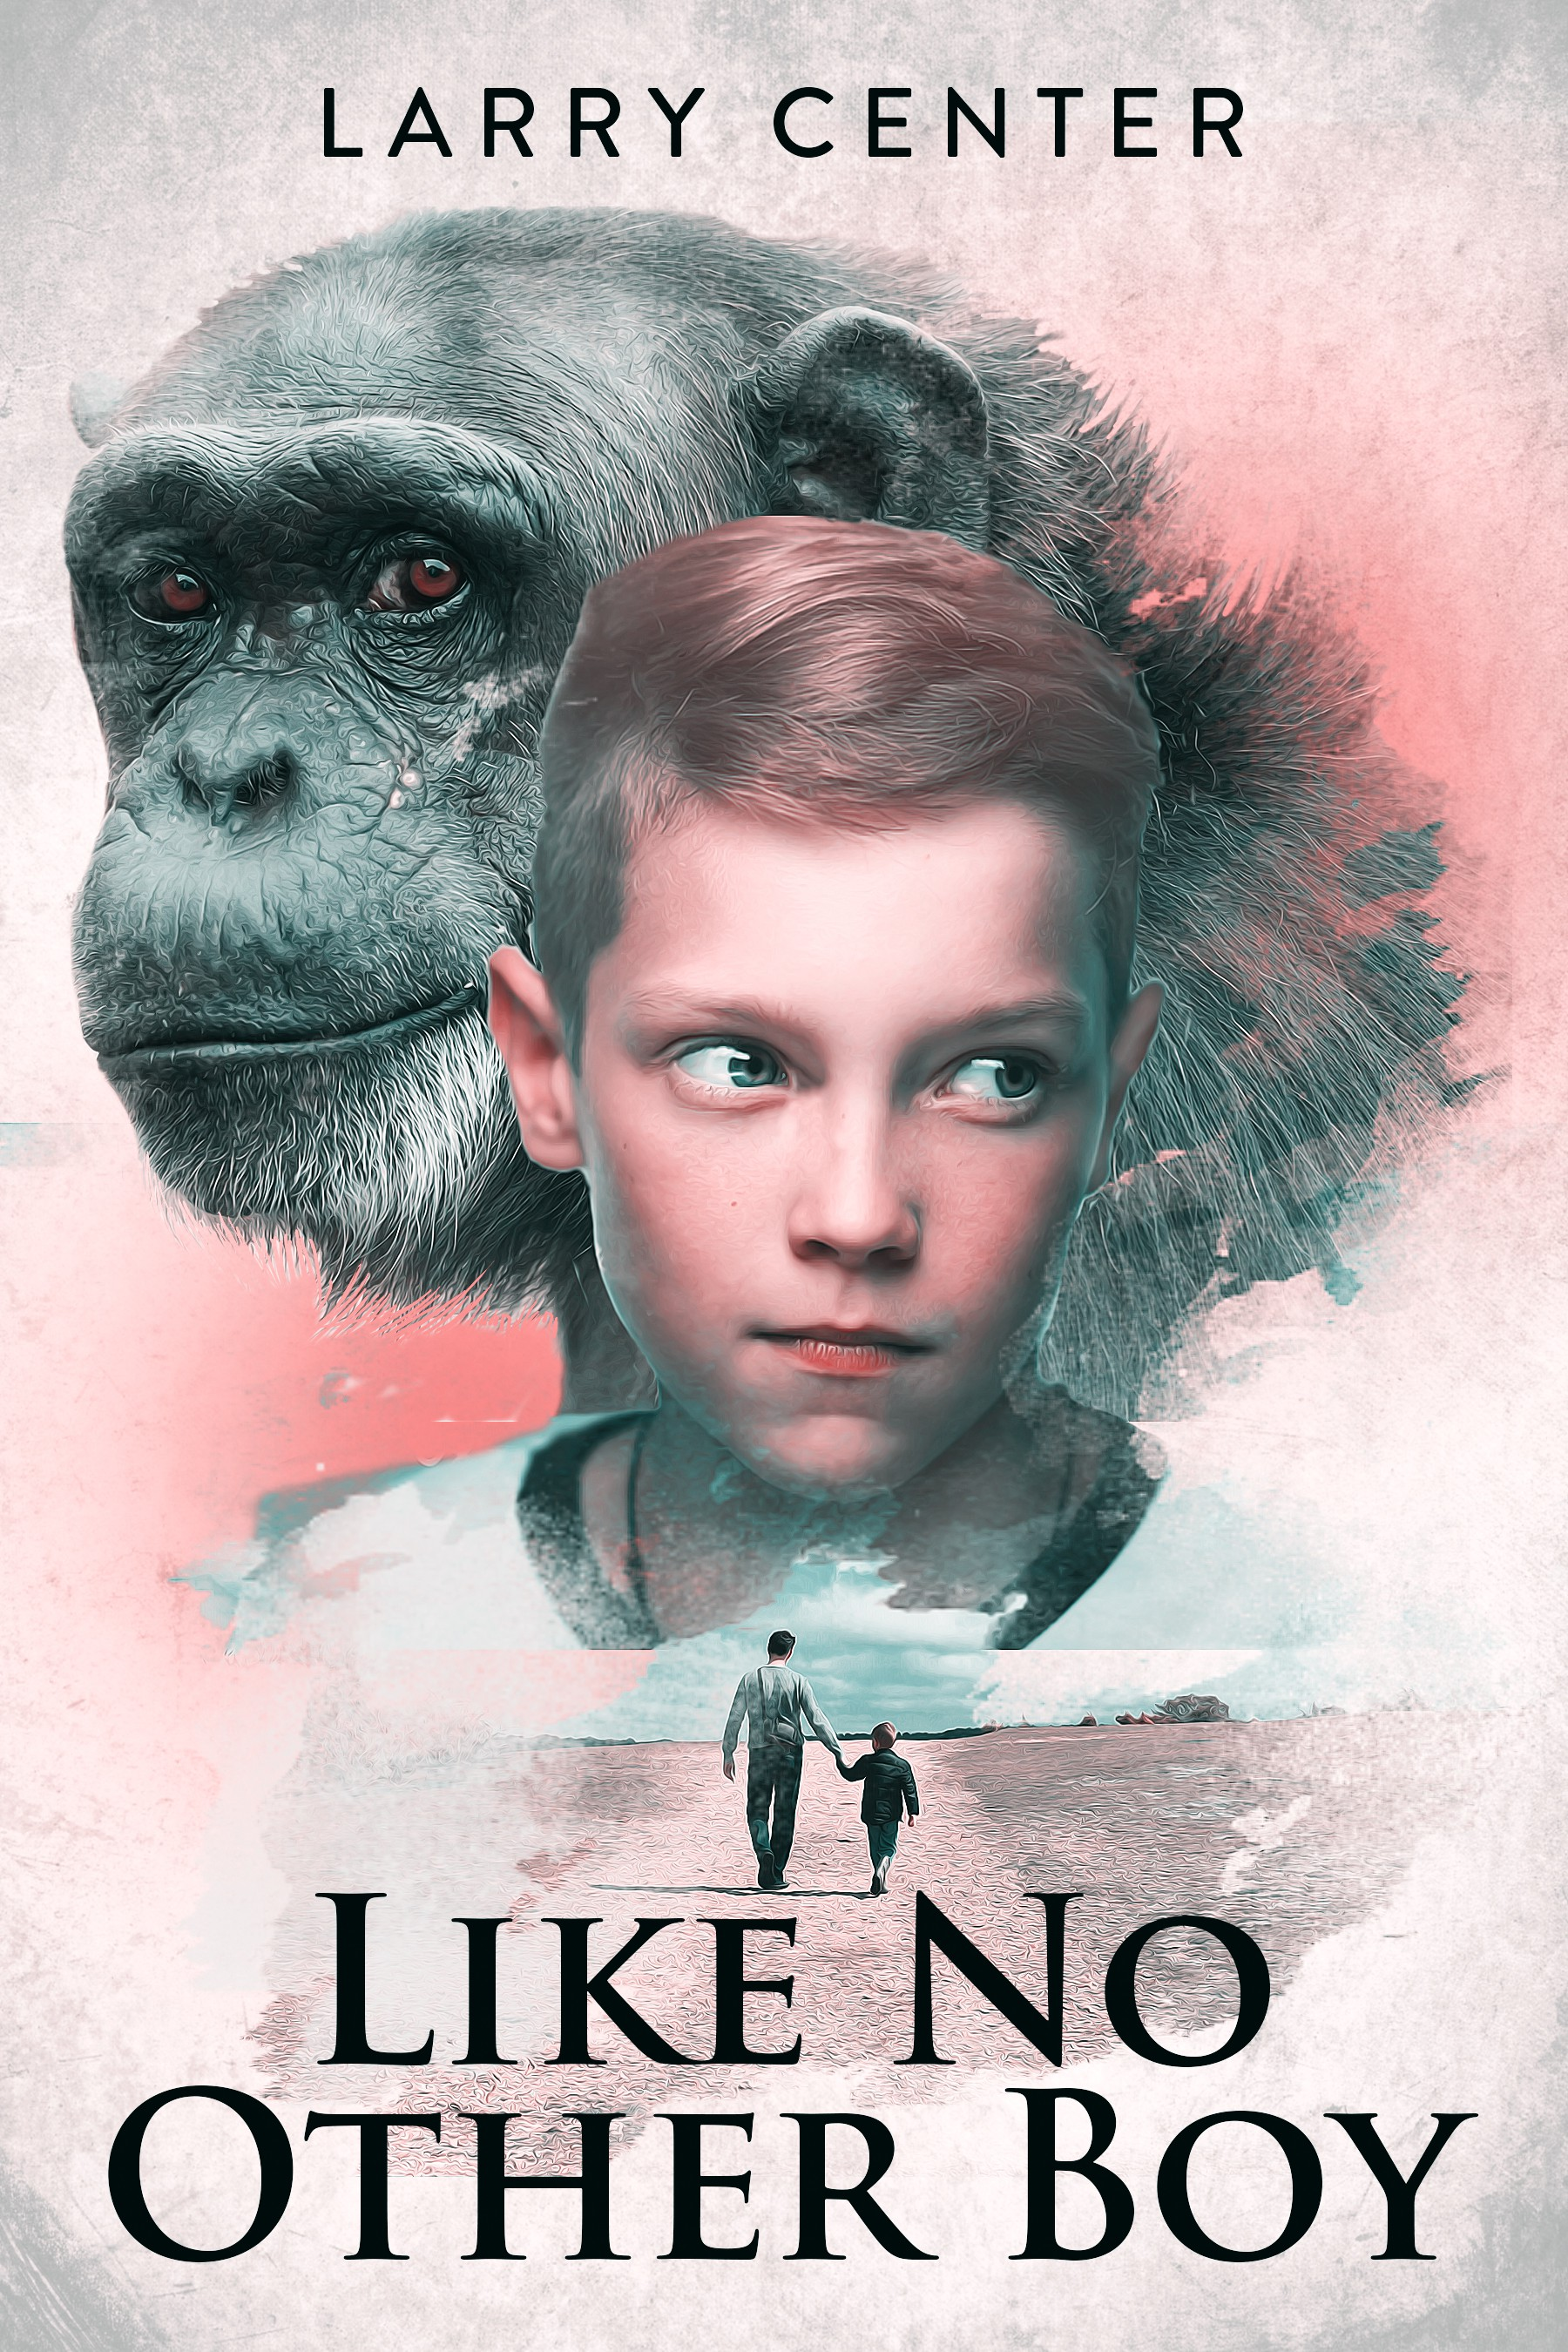 design a book cover for a novel about a boy, his father, and a chimpanzee